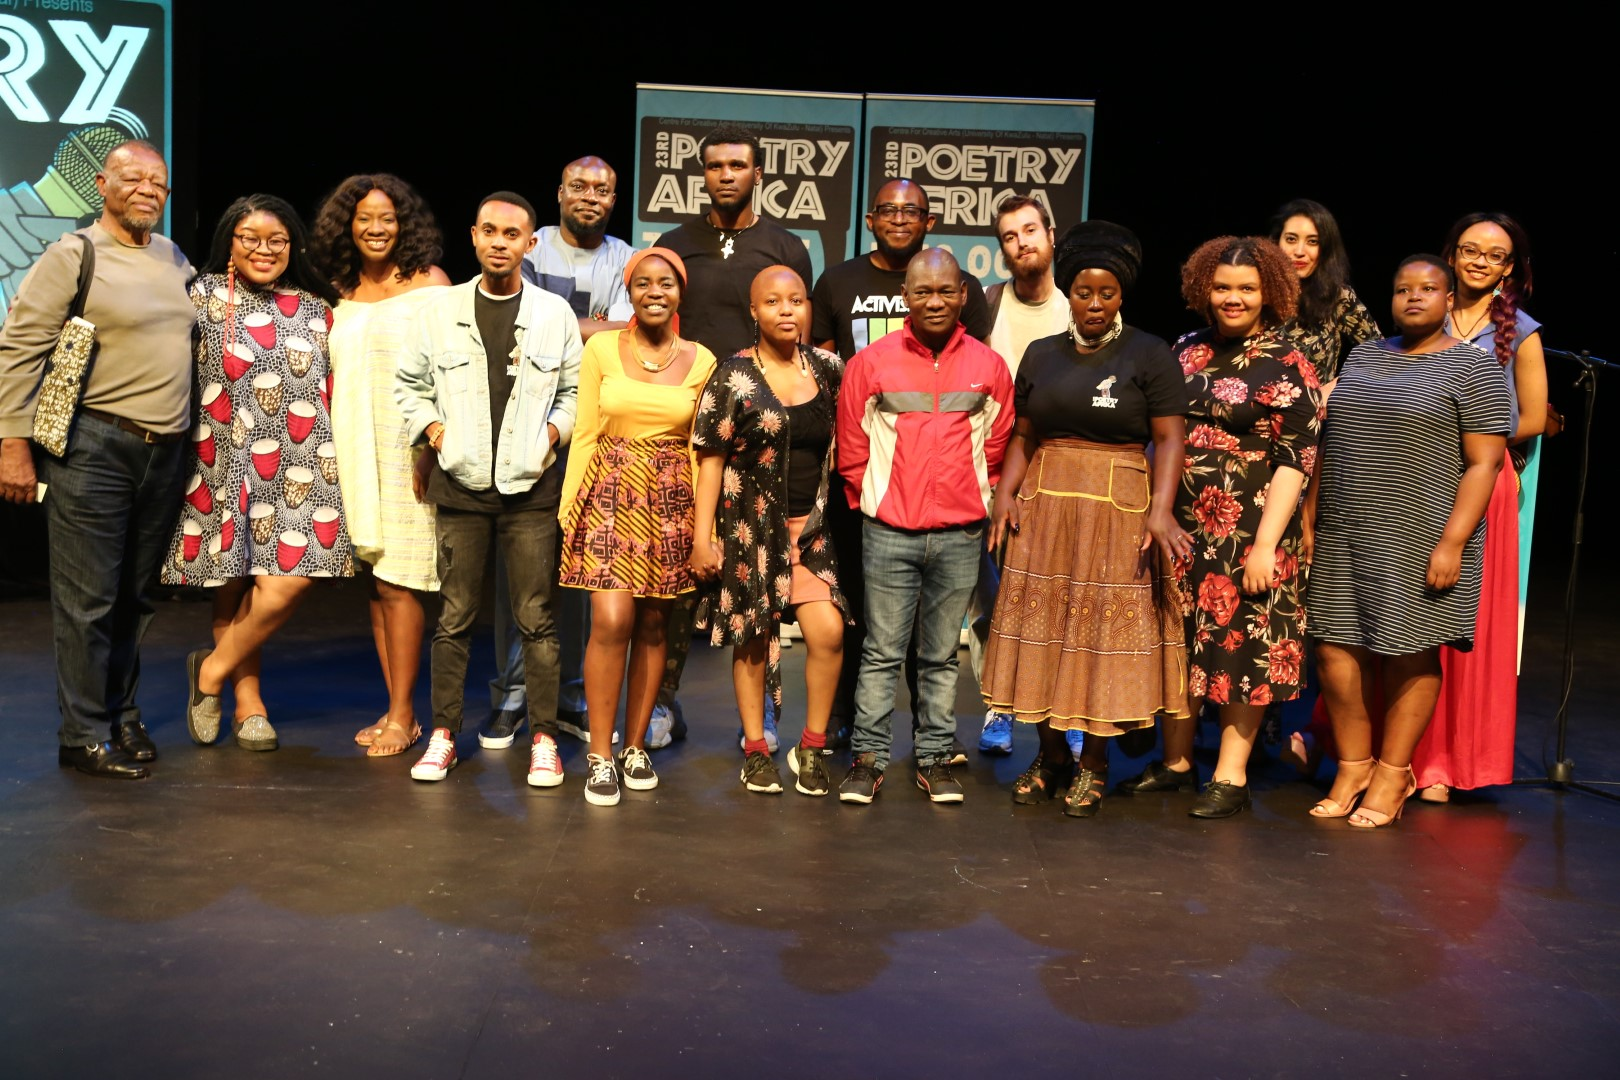 Highlights from Poetry Africa's opening night.